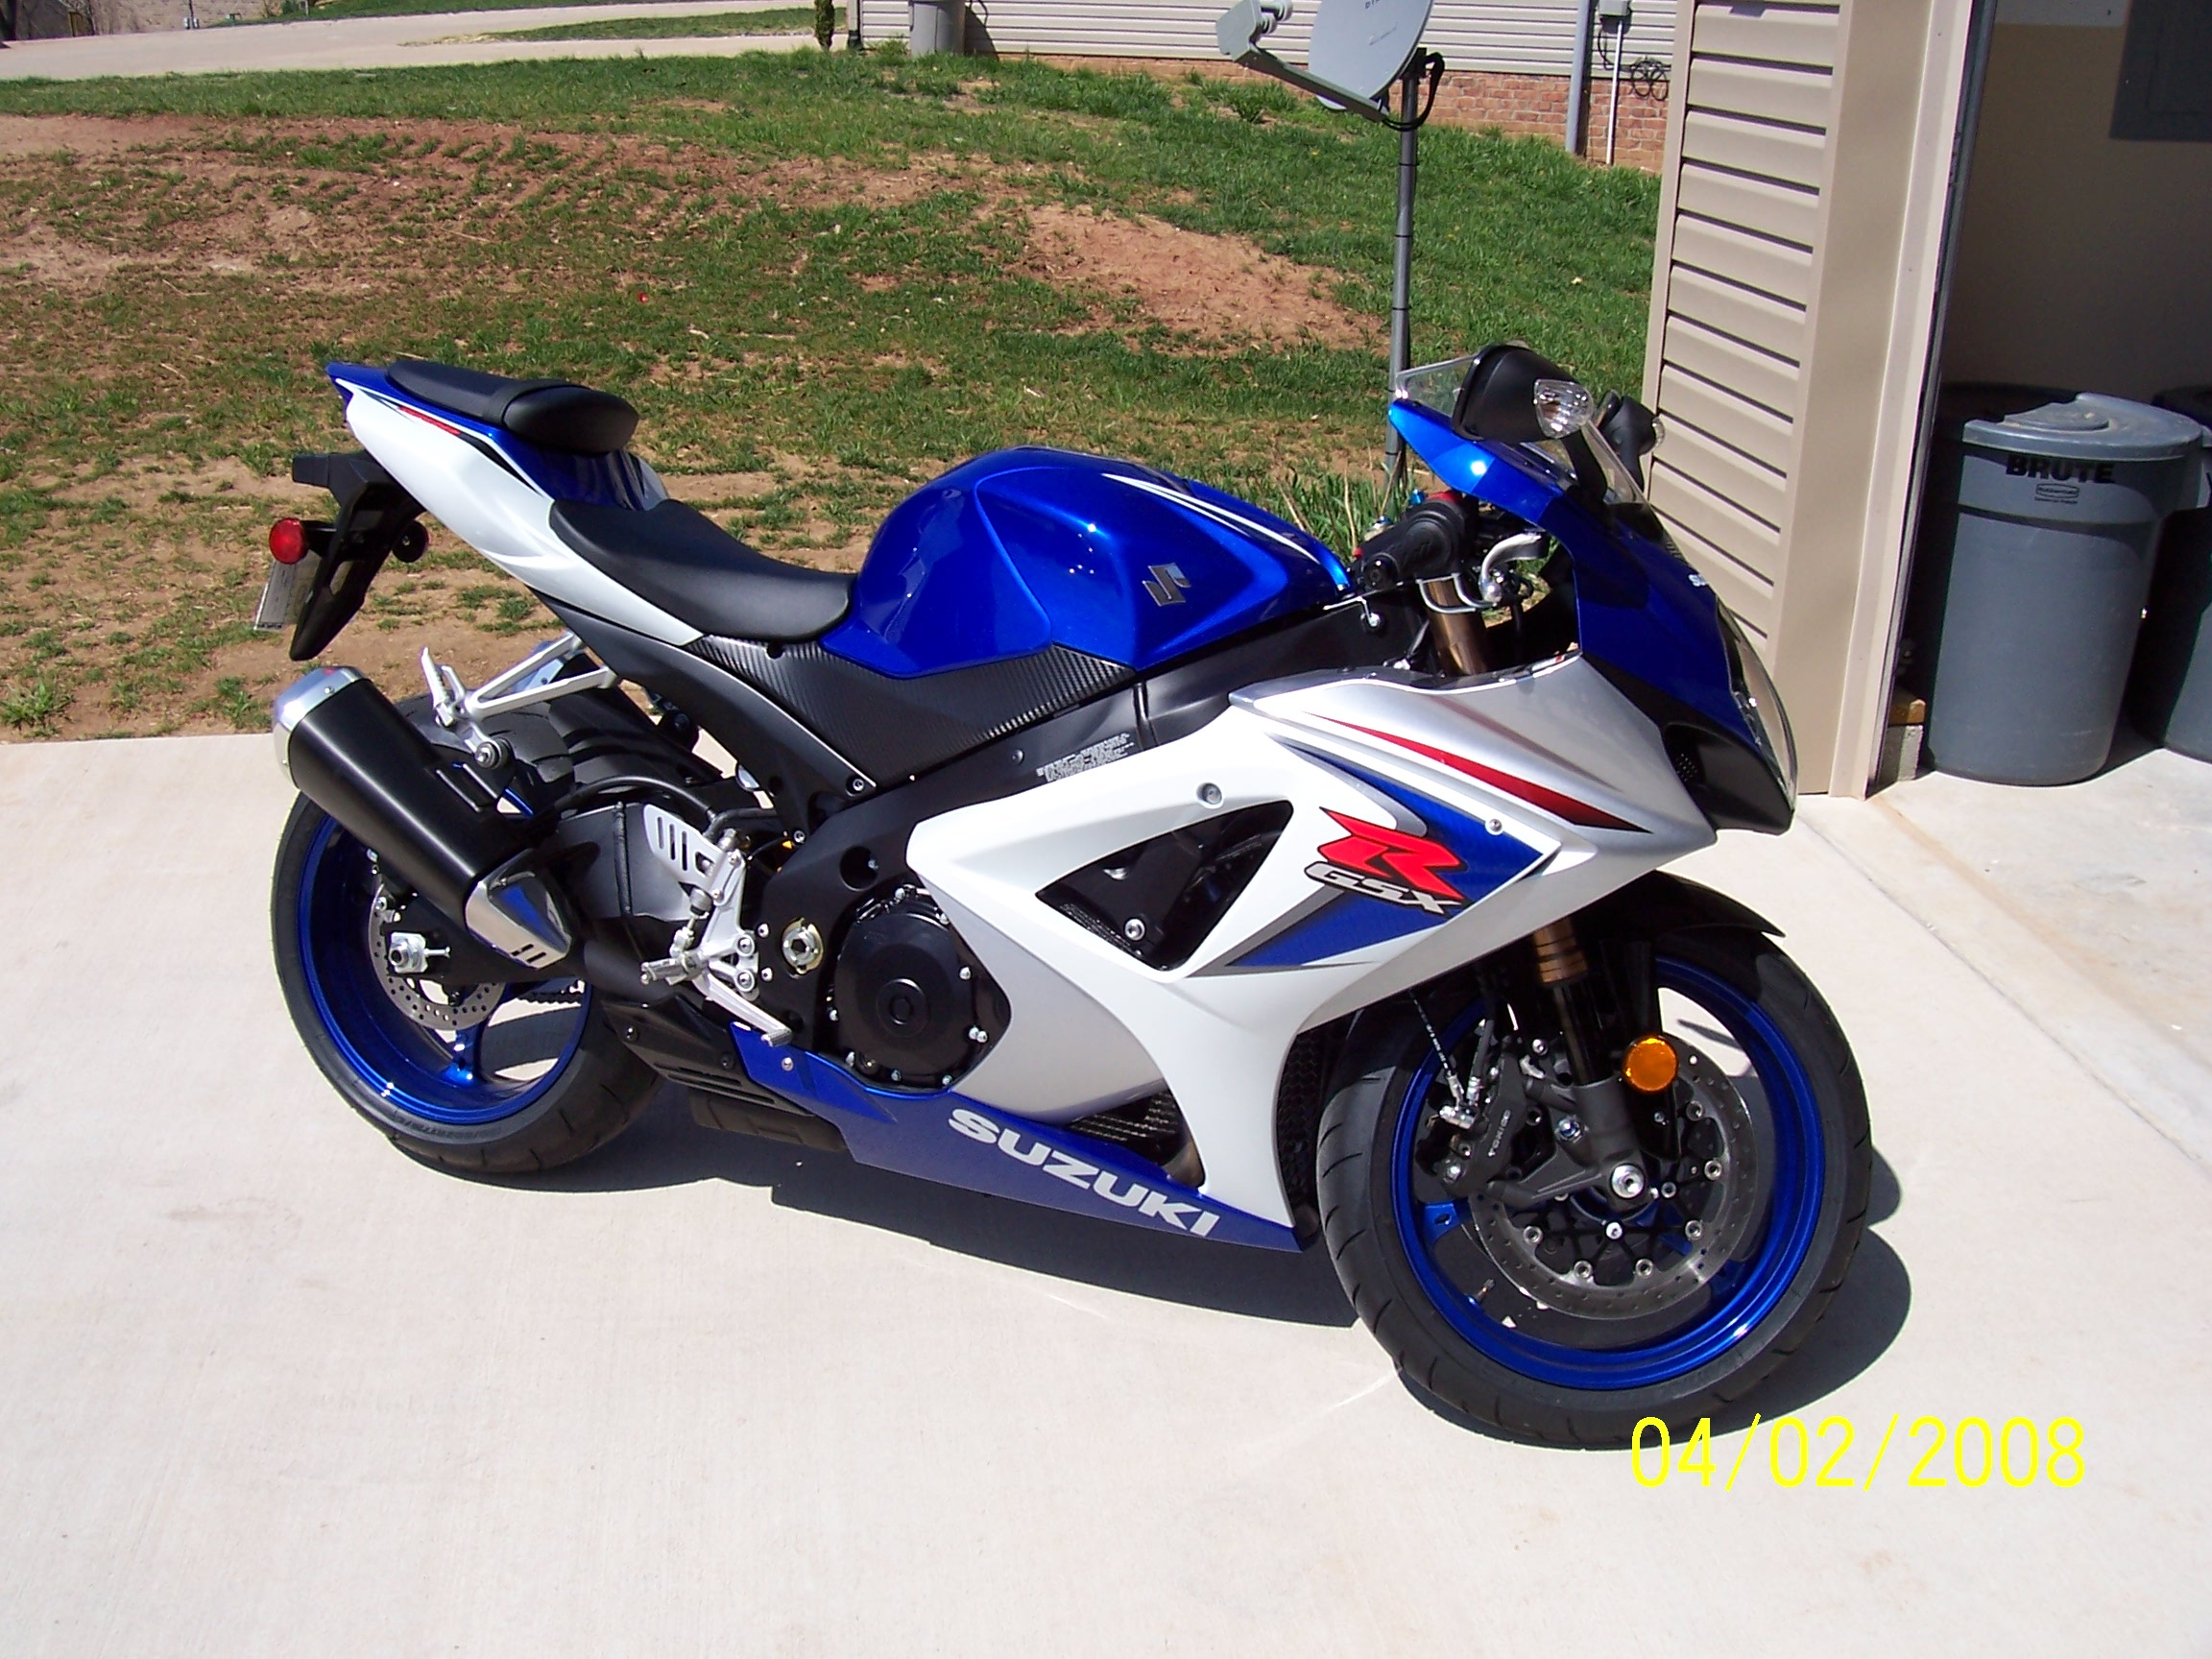 My new toy GSXR 1000 K8, box stock, for now